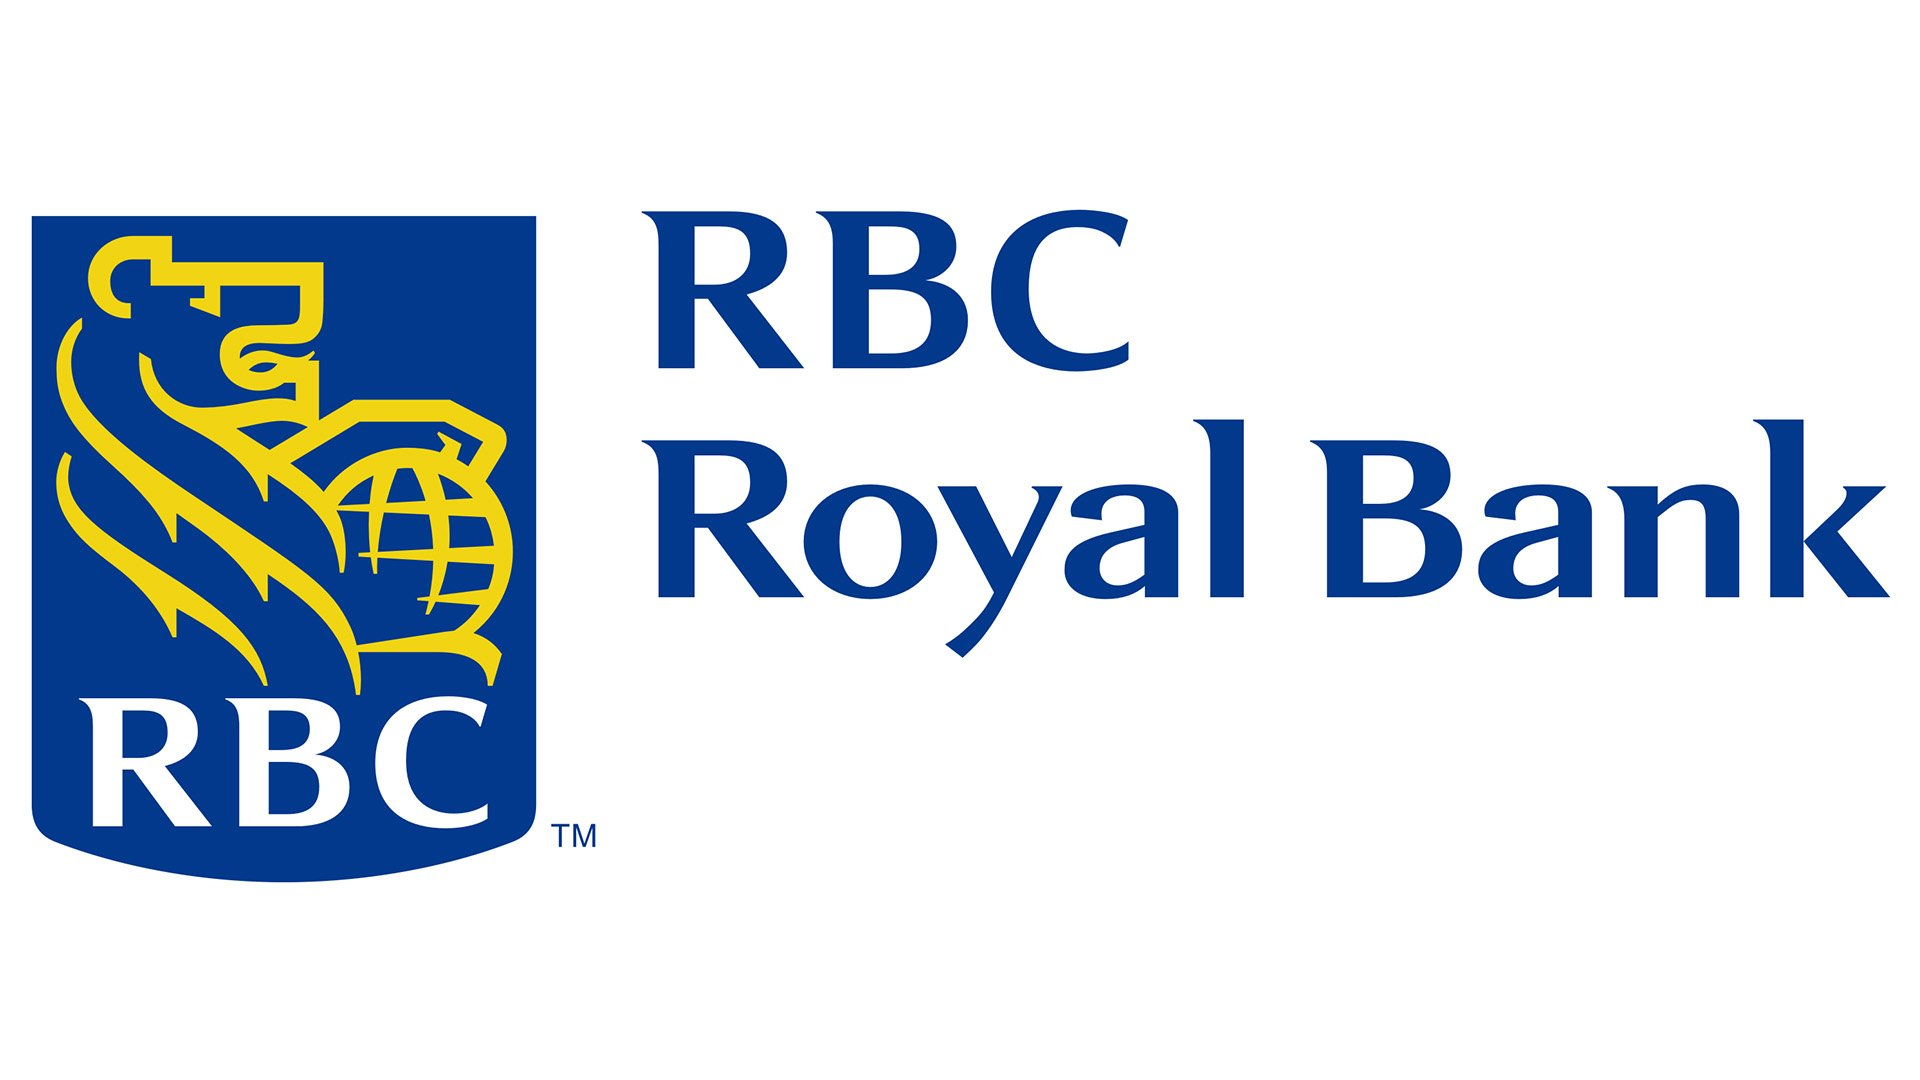 rbc-royal-bank-logo